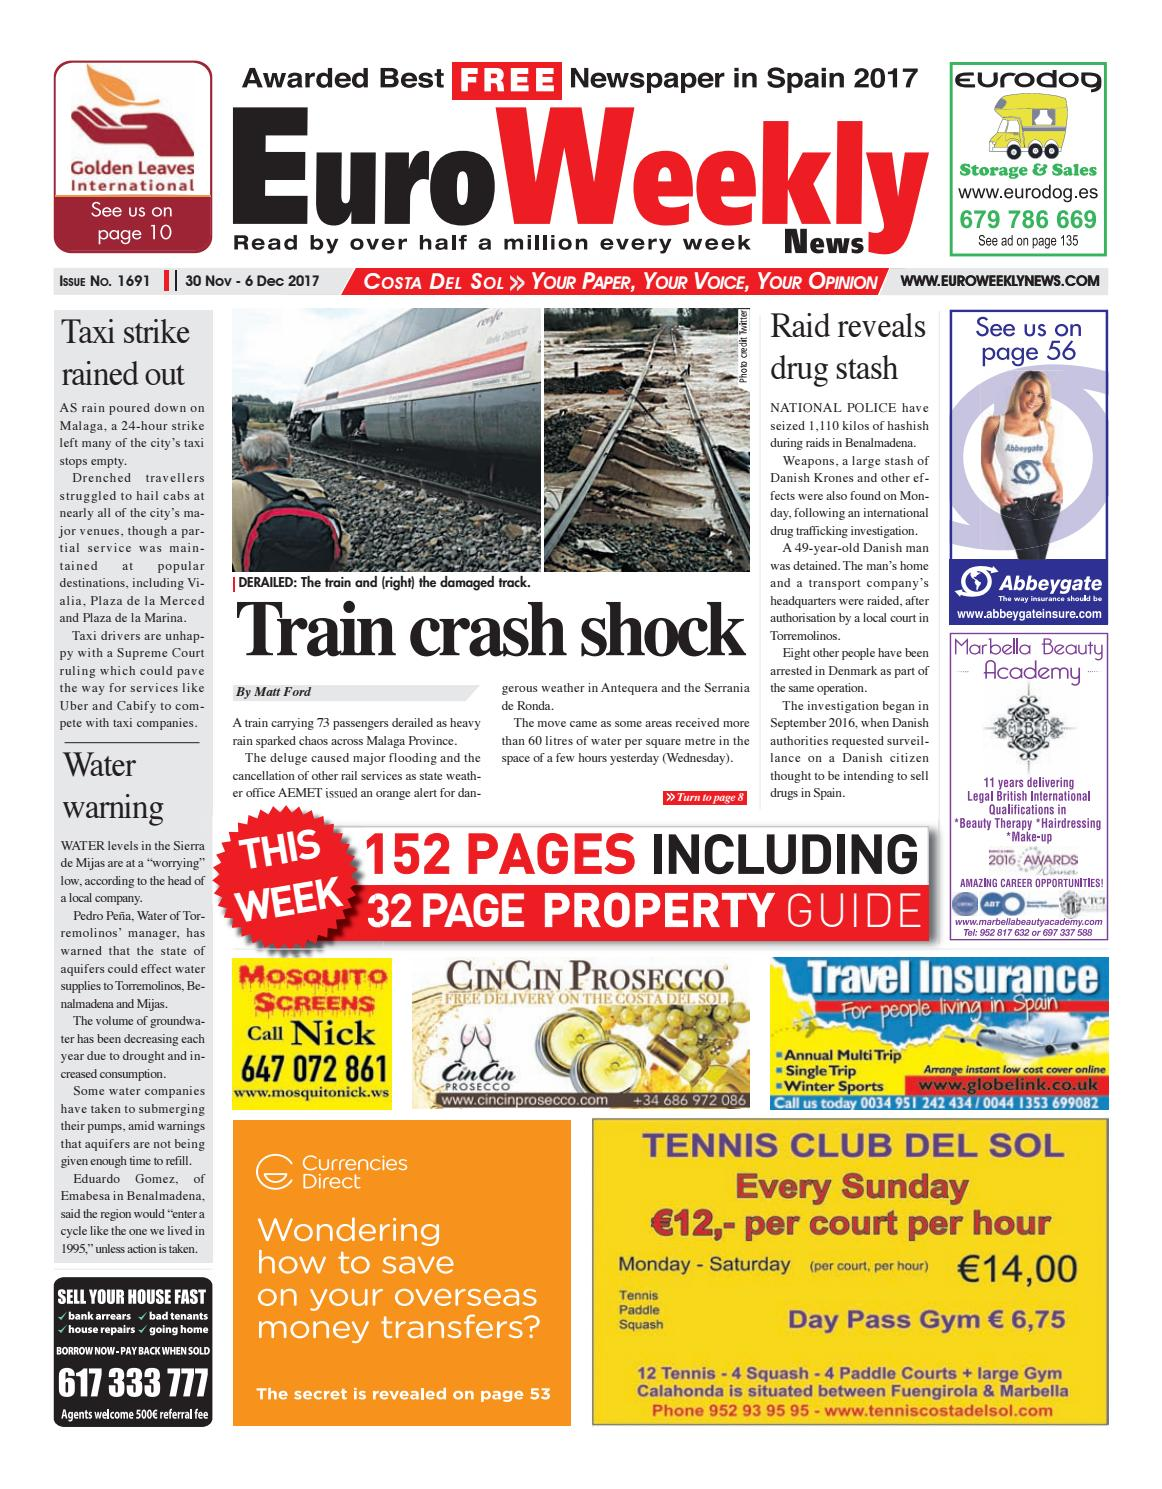 Euro Weekly News - Costa del Sol 30 November – 6 December 2017 Issue 1691  by Euro Weekly News Media S.A. - issuu 2177613fb47